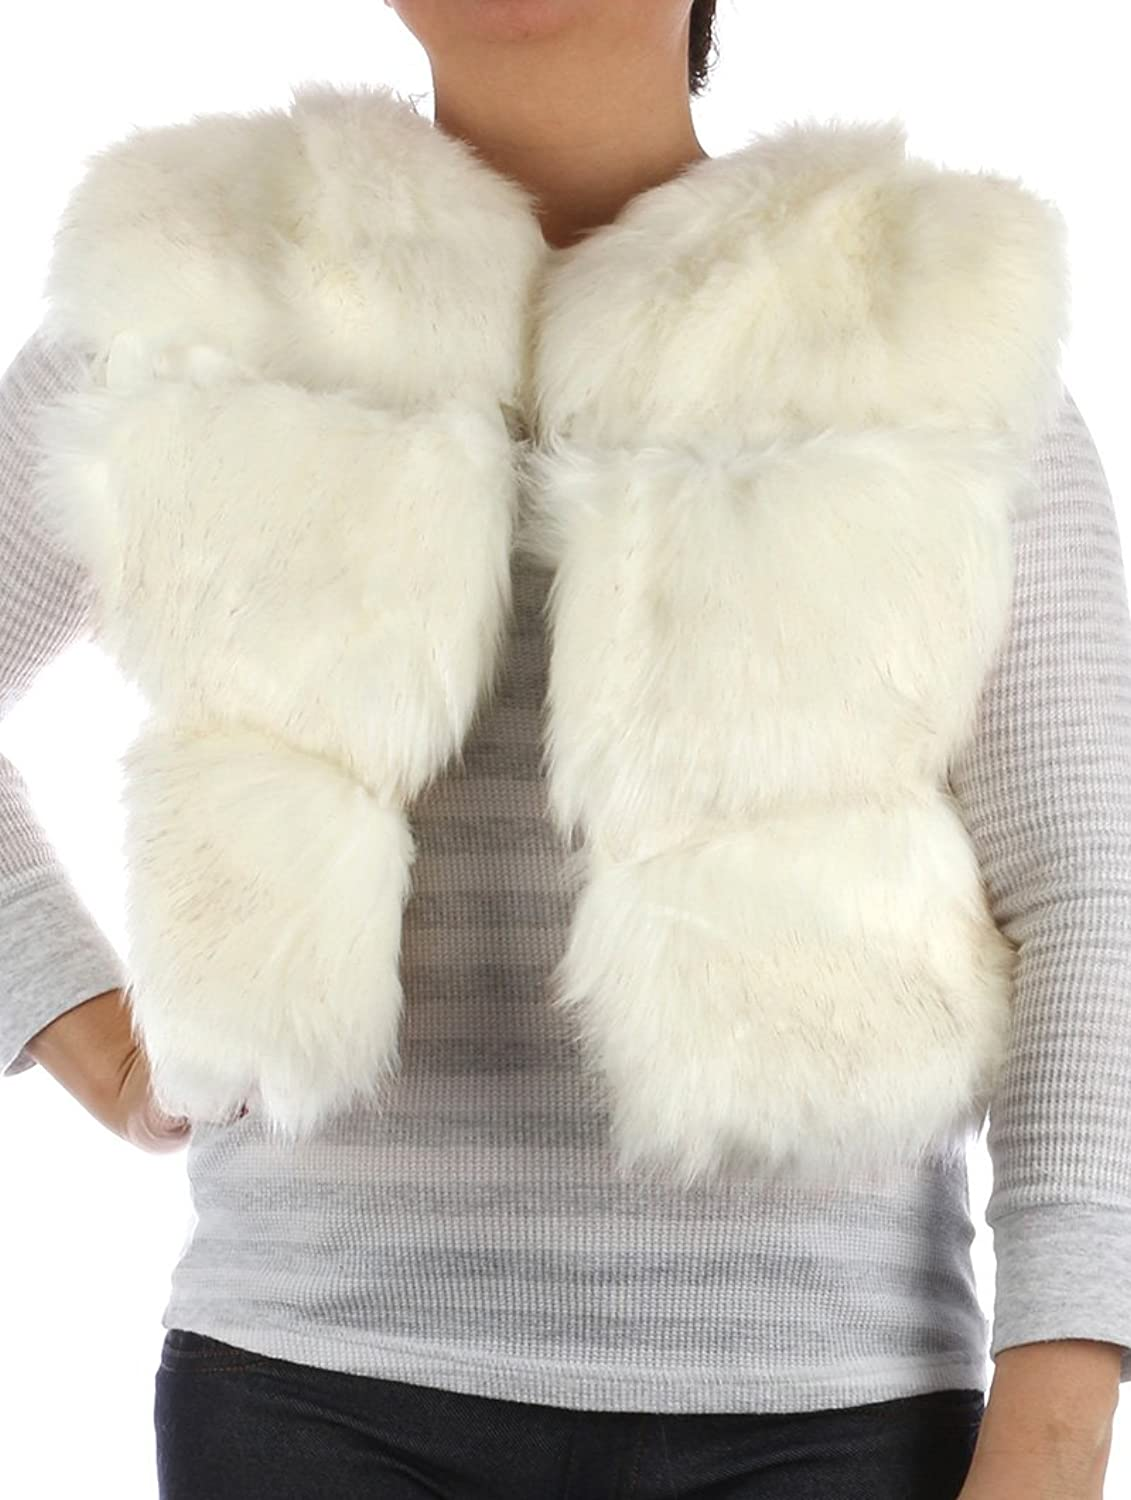 Parisian Chic Scarf Russian Style Ribbed Soft Fur Vest Hook Closure X Acrylic Large White